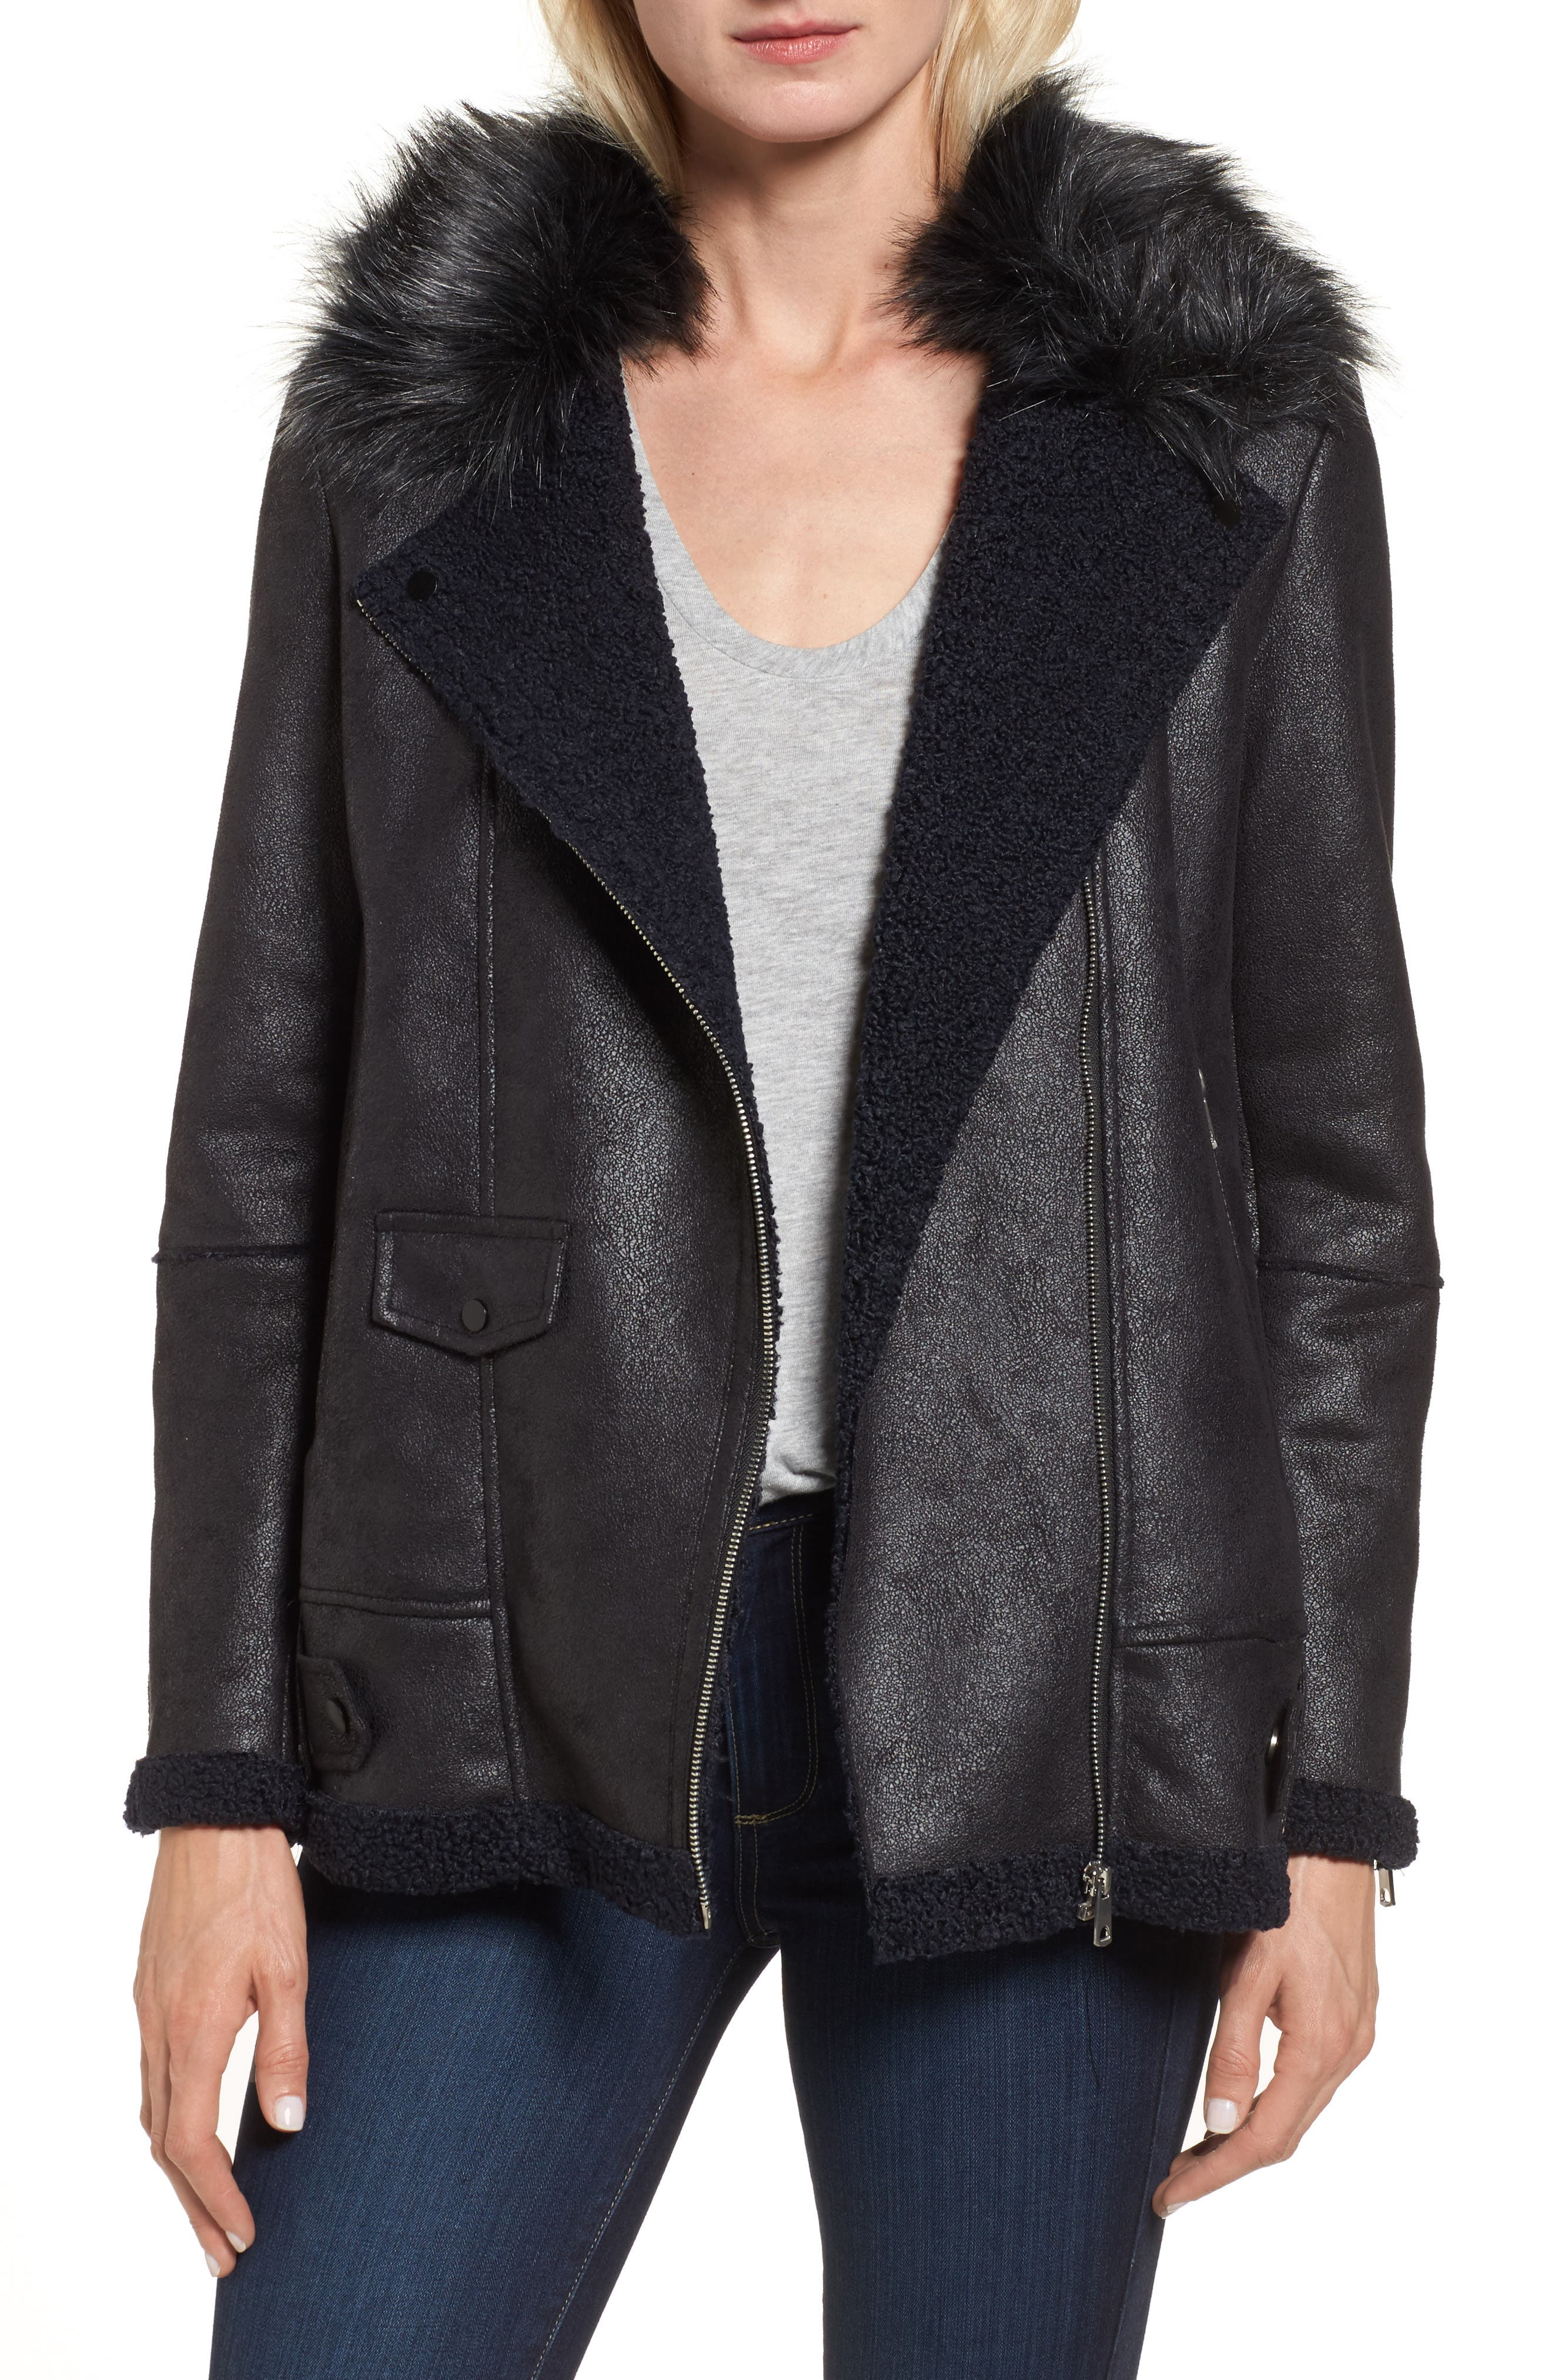 Alternate Image 1 Selected - NVLT Faux Suede Moto Jacket with Faux Fur Collar